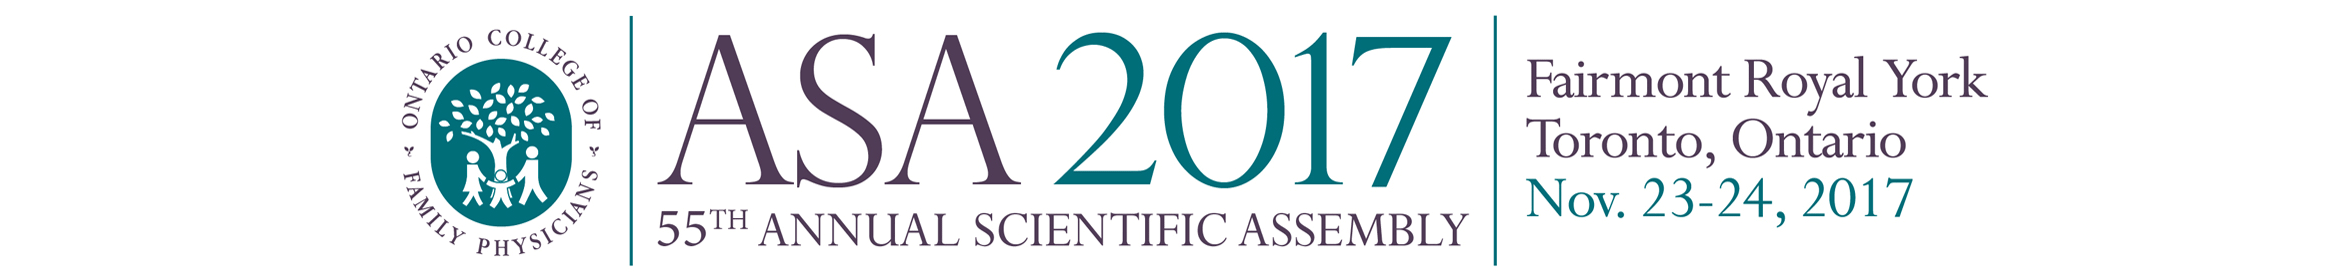 55th Annual Scientific Assembly Main banner